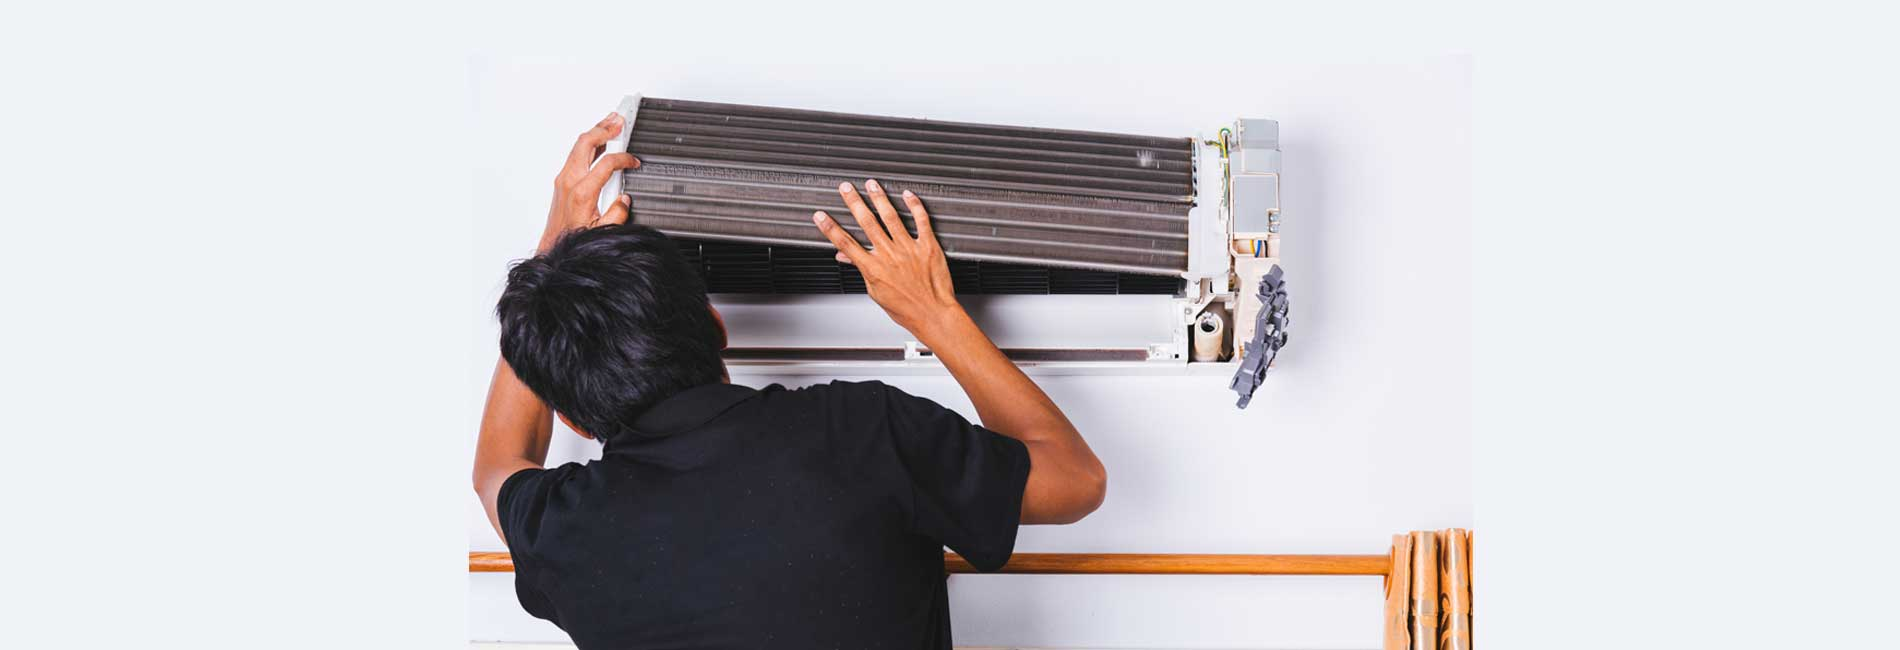 Air Condition Service in Choolai